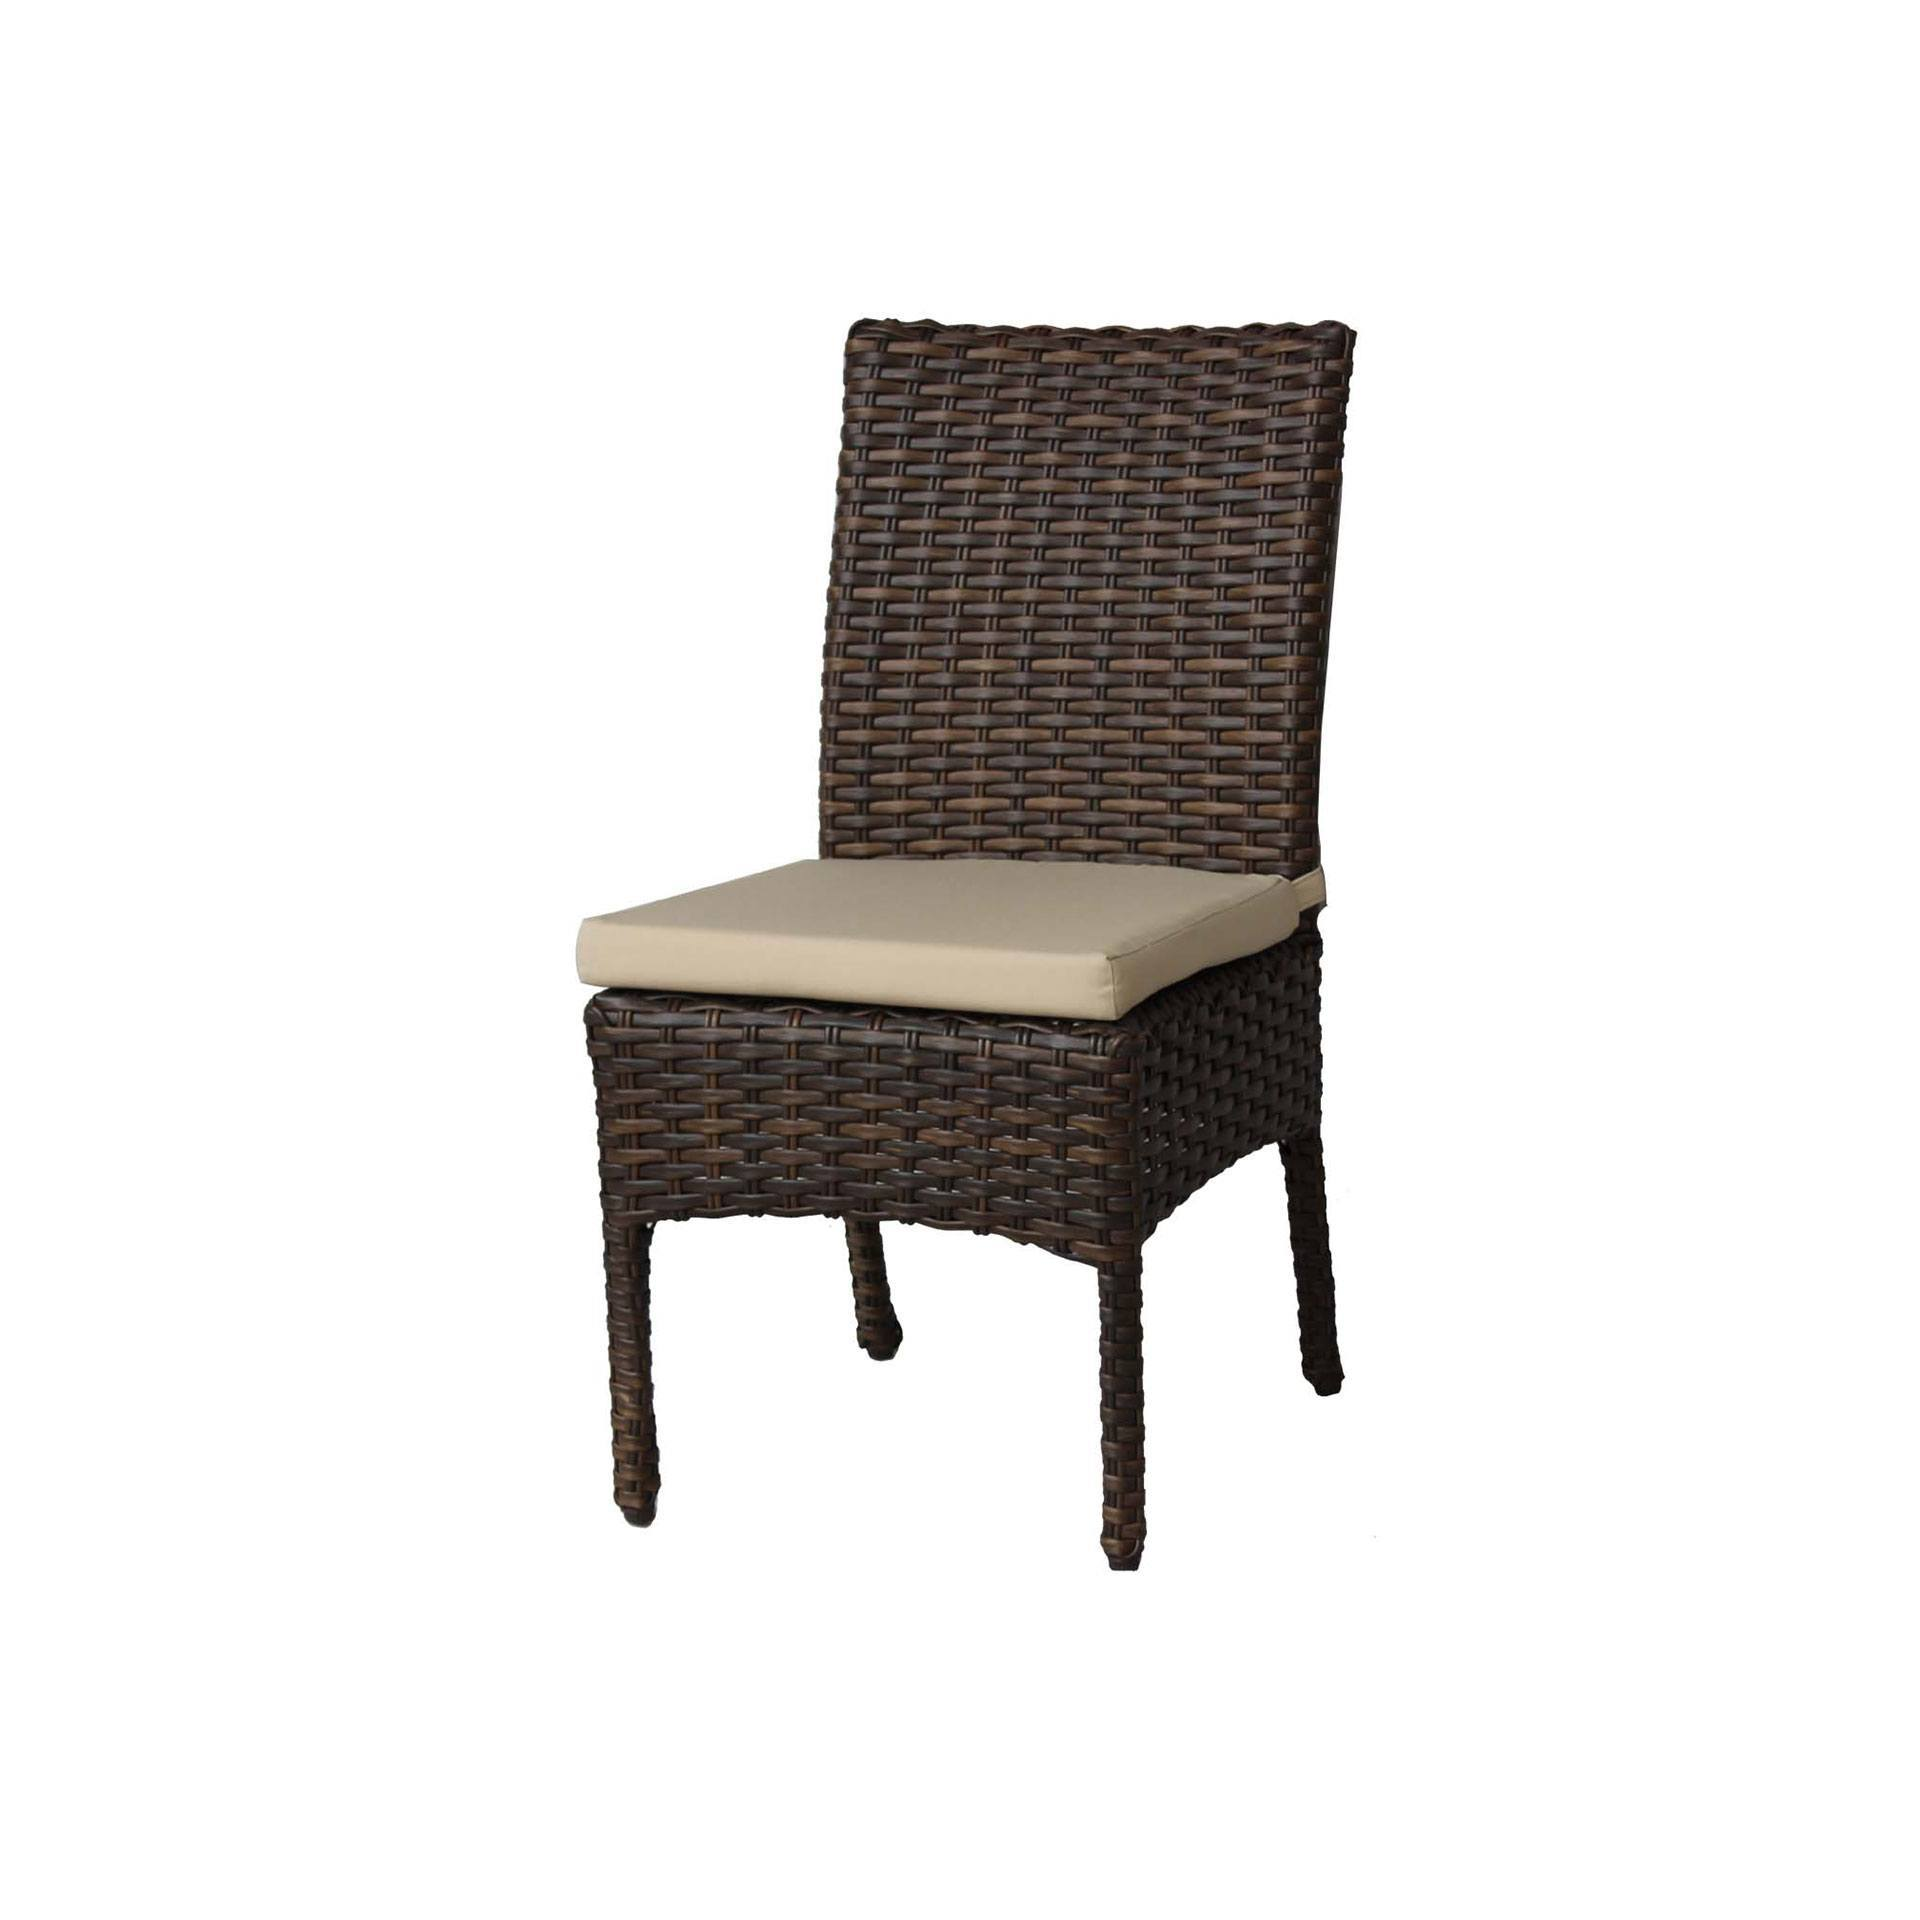 Ratana Portfino Dining Side Chair Leisure Living